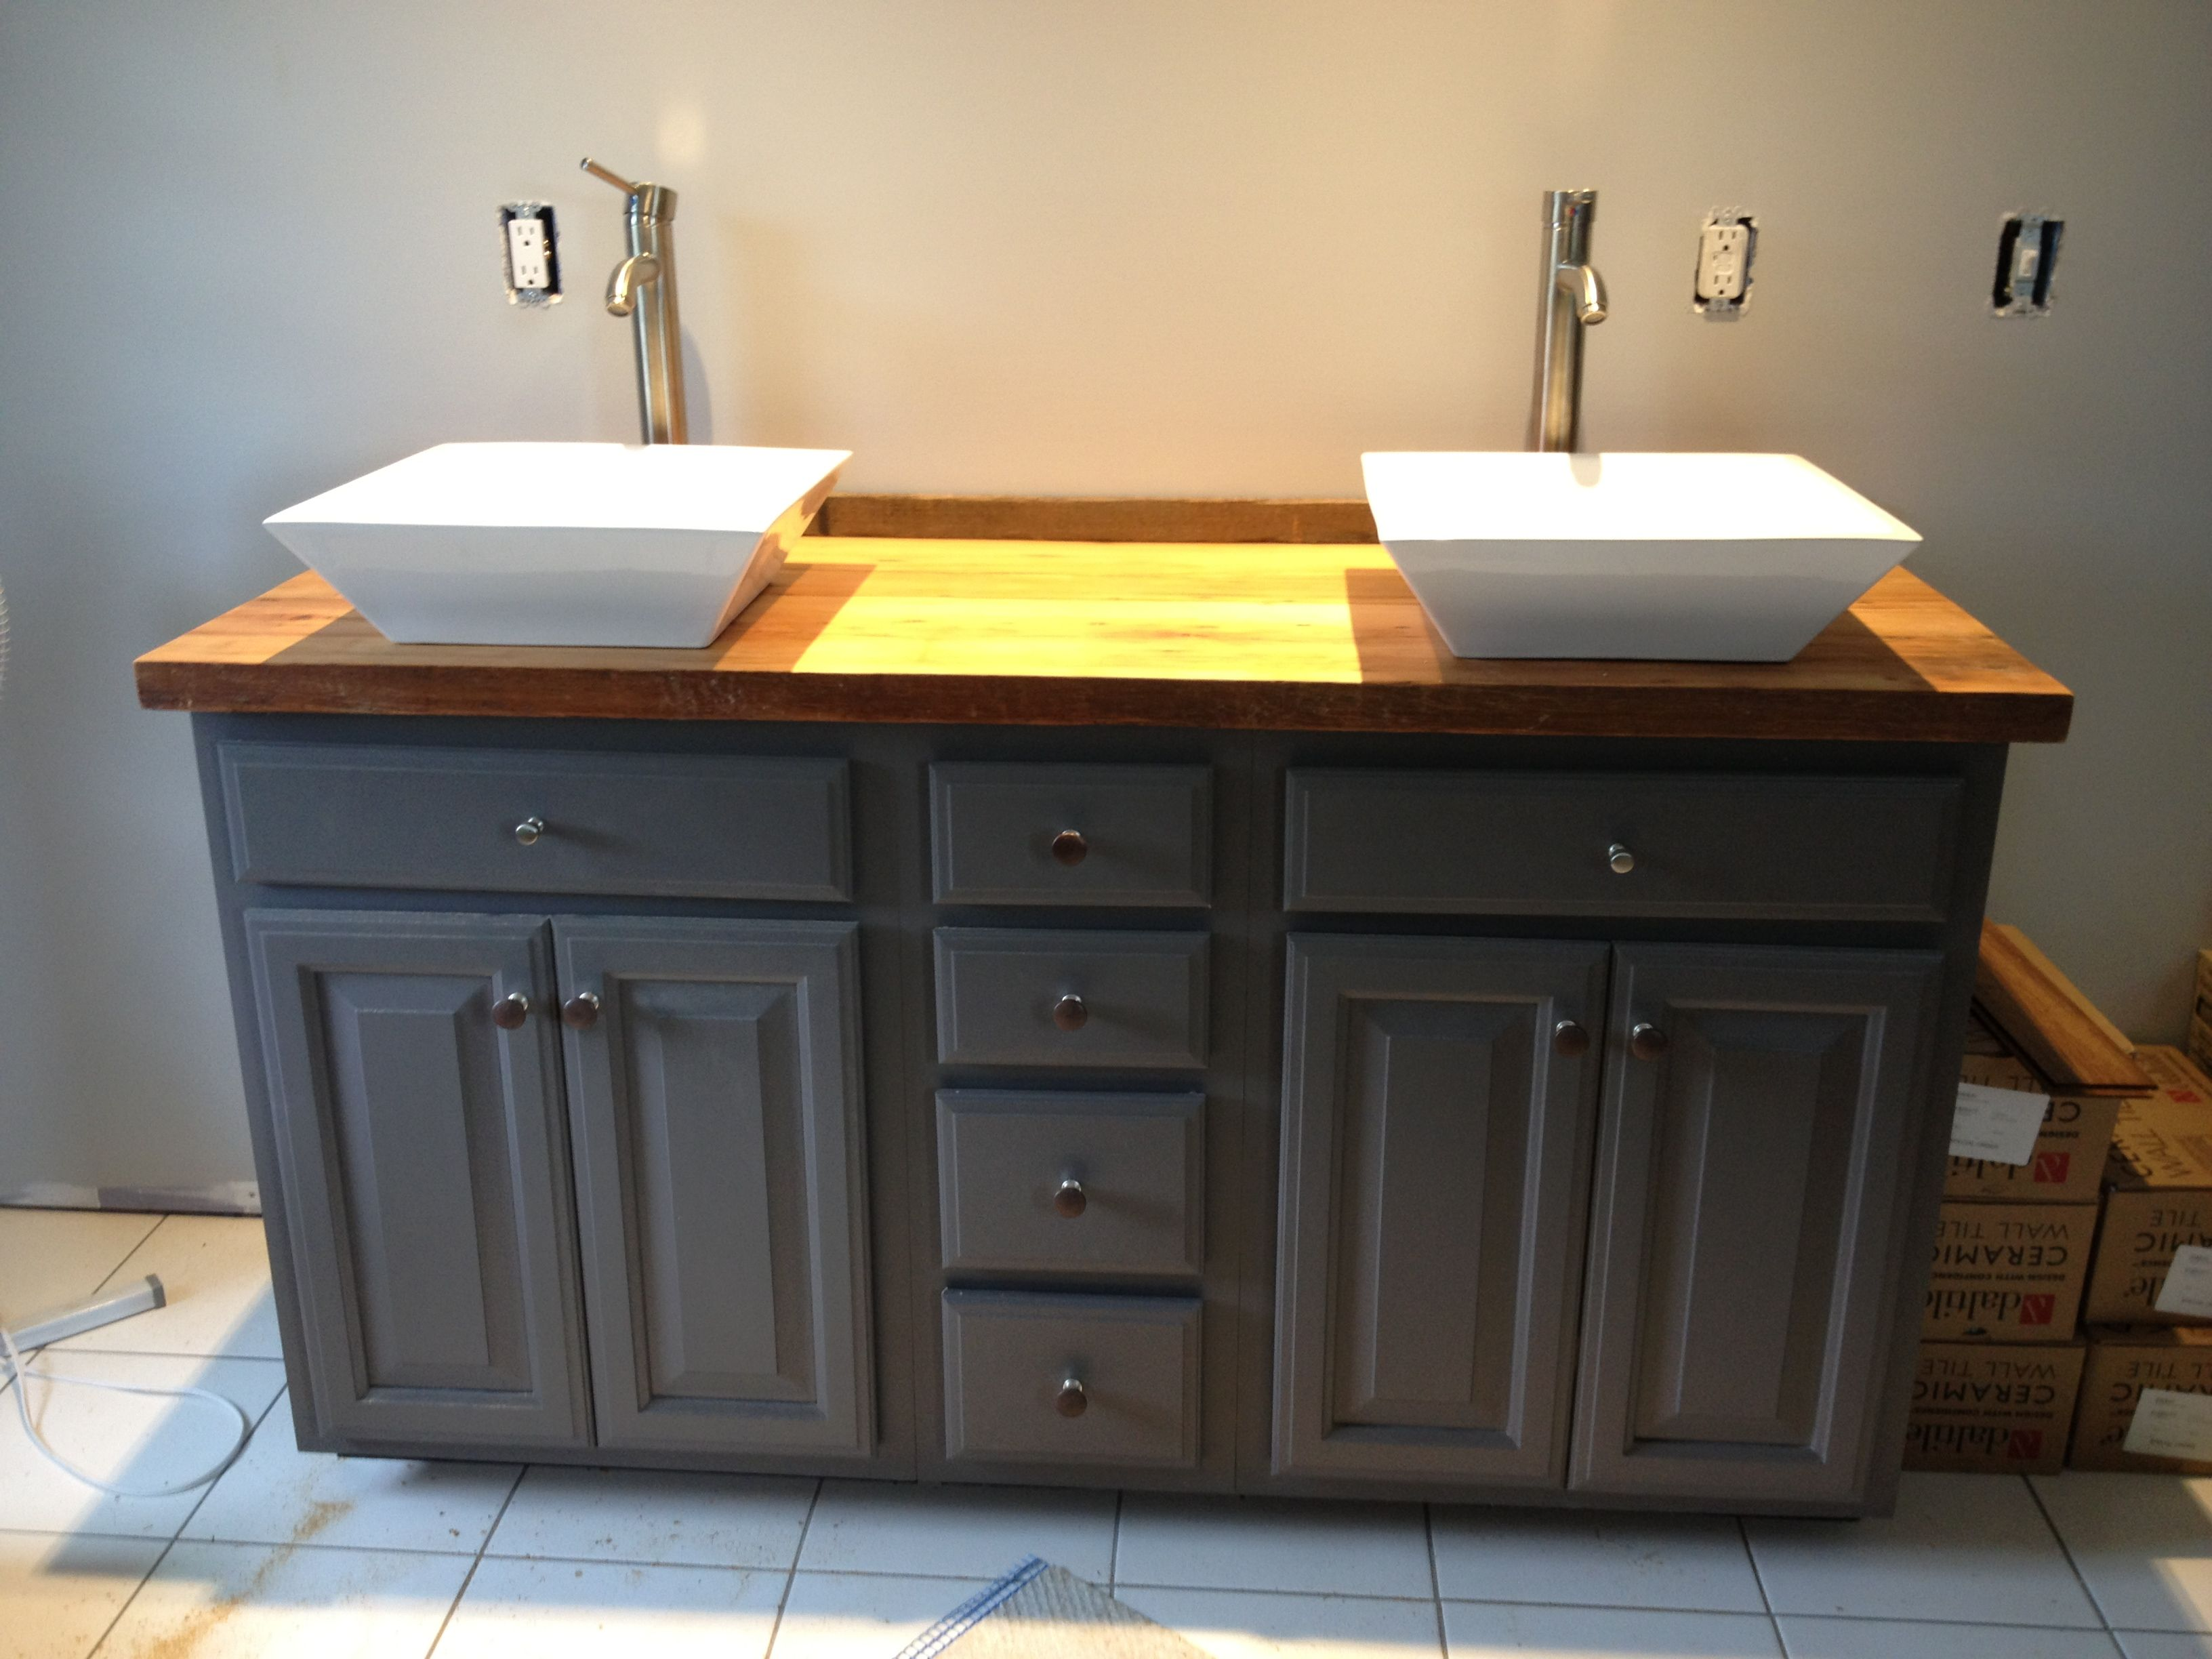 Diy bathroom vanity used the barn wood hemlock pieces finished with tung oil counter top Used bathroom vanity with sink